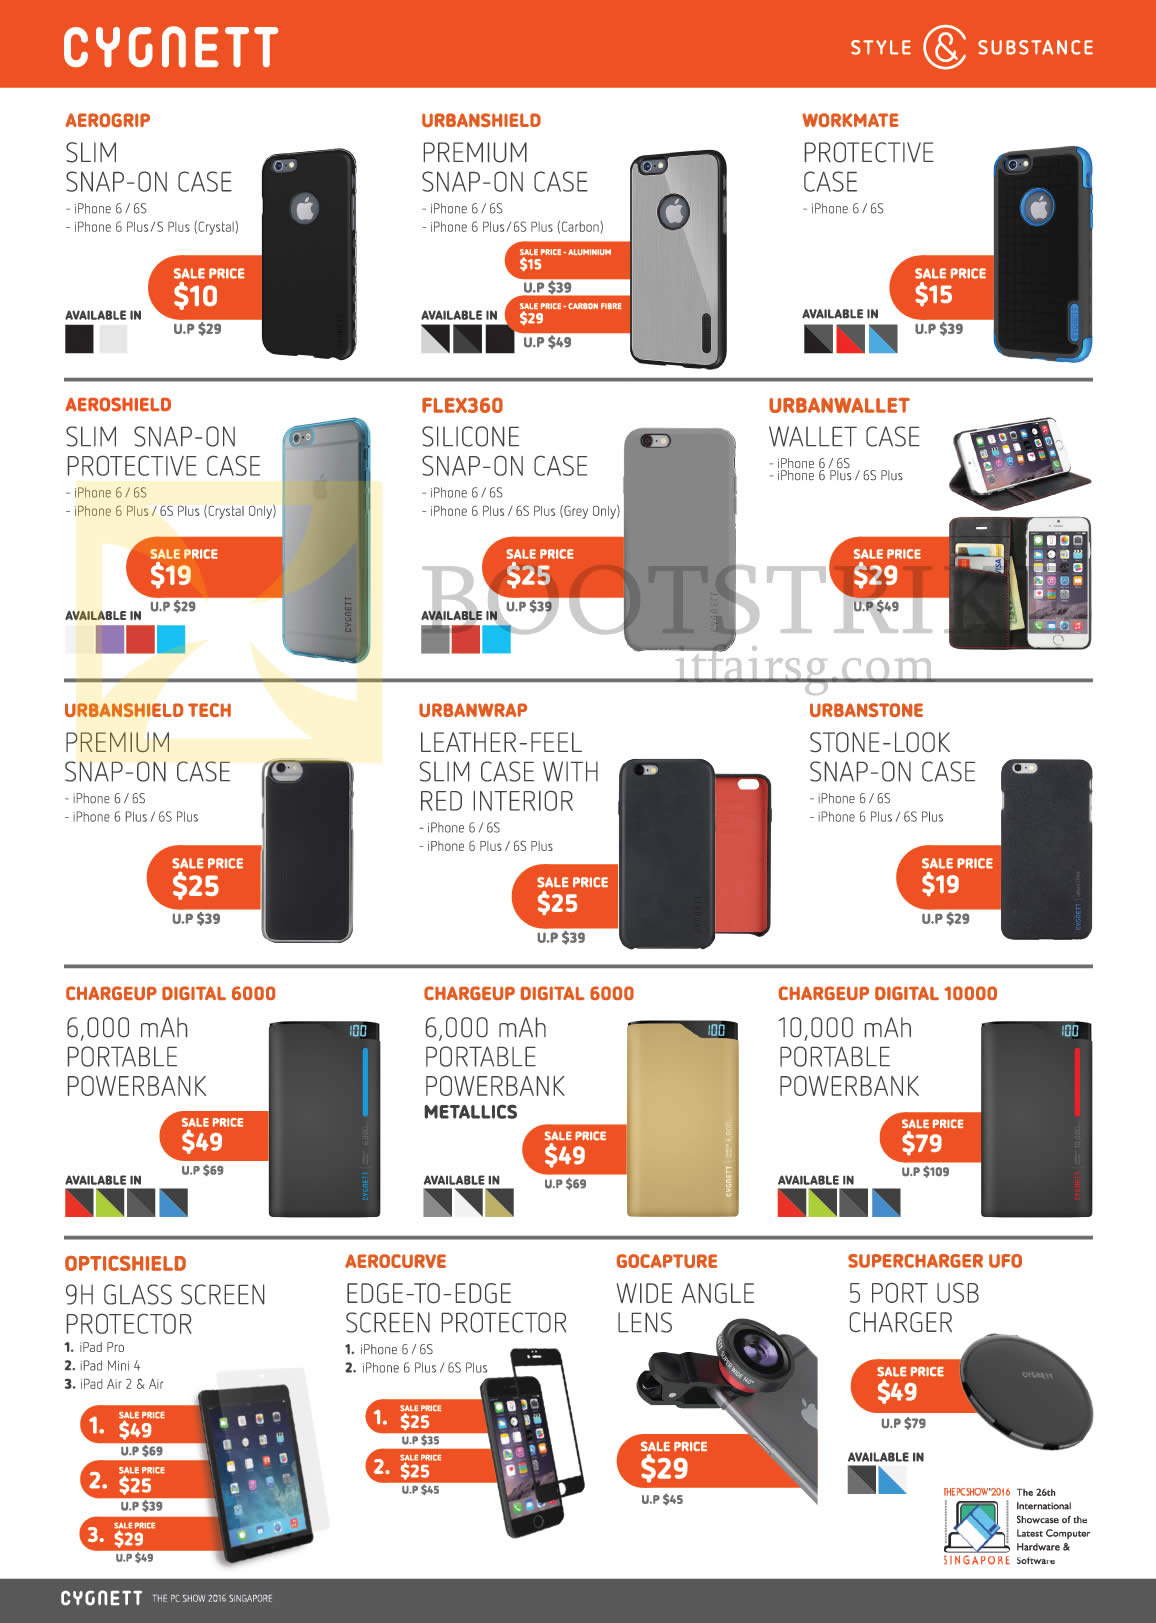 PC SHOW 2016 price list image brochure of Nubox Cygnett Cases, Protectors, Lenses, USB Charger, Aerogrip, Urbanshield, Workmate, Flex360, Urbanwrap, Chargeup Digital 6000, Opticshield, Gocapture, Supercharger UFO